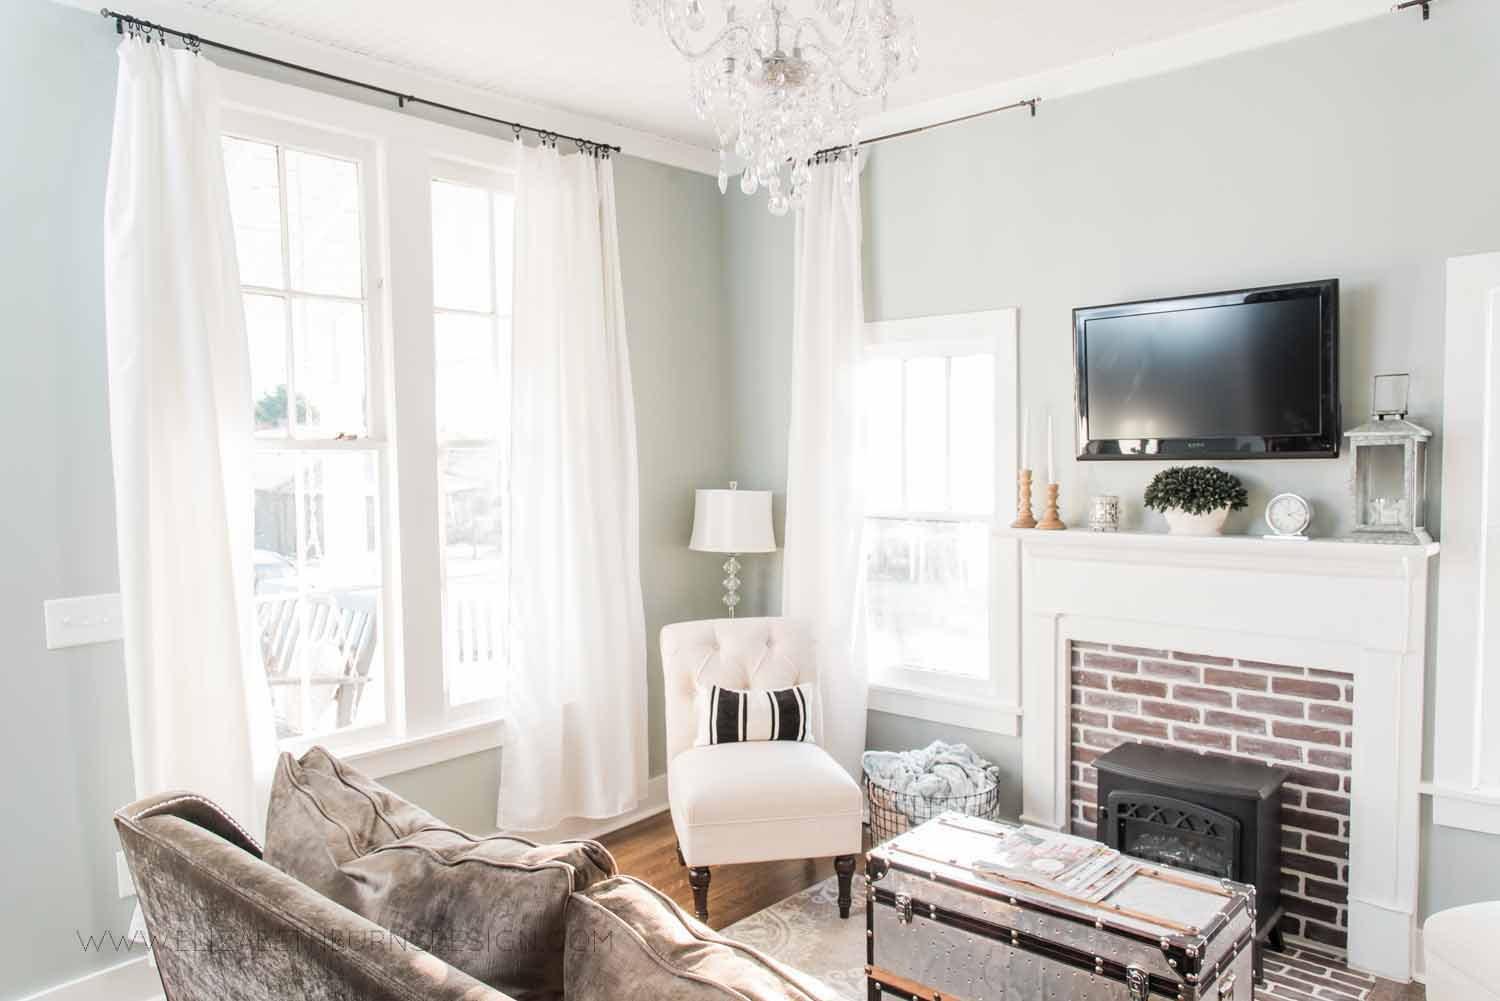 Elizabeth Burns Design Raleigh Interior Designer  Farmhouse Fixer Upper Cottage Renovation, Sherwin Williams Magnetic Gray SW 7058 Traditional Living Room (3).jpg